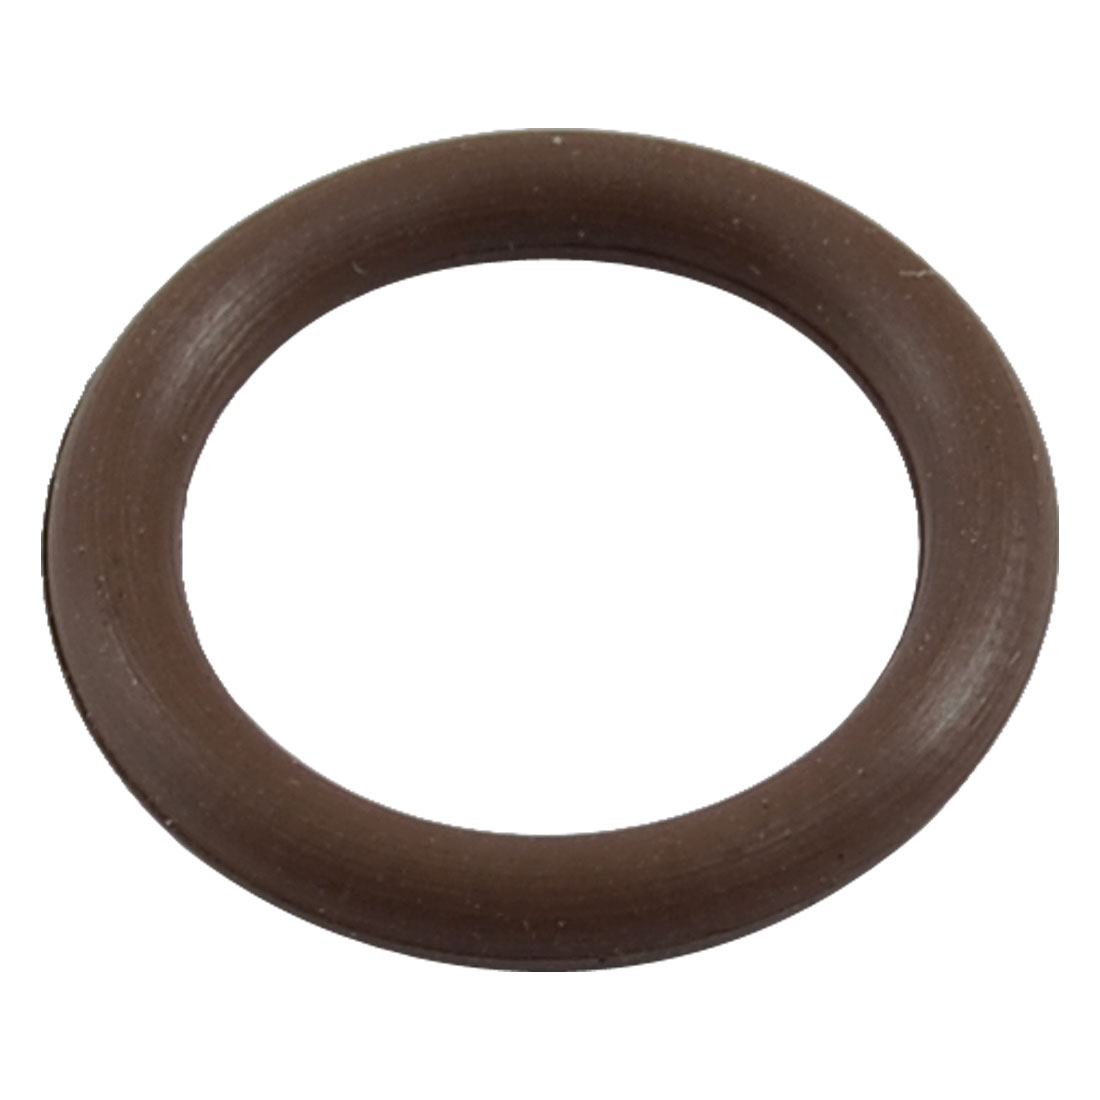 19mm x 2.5mm Mechanical Fluorine Rubber O Ring Oil Seal Gasket Washer